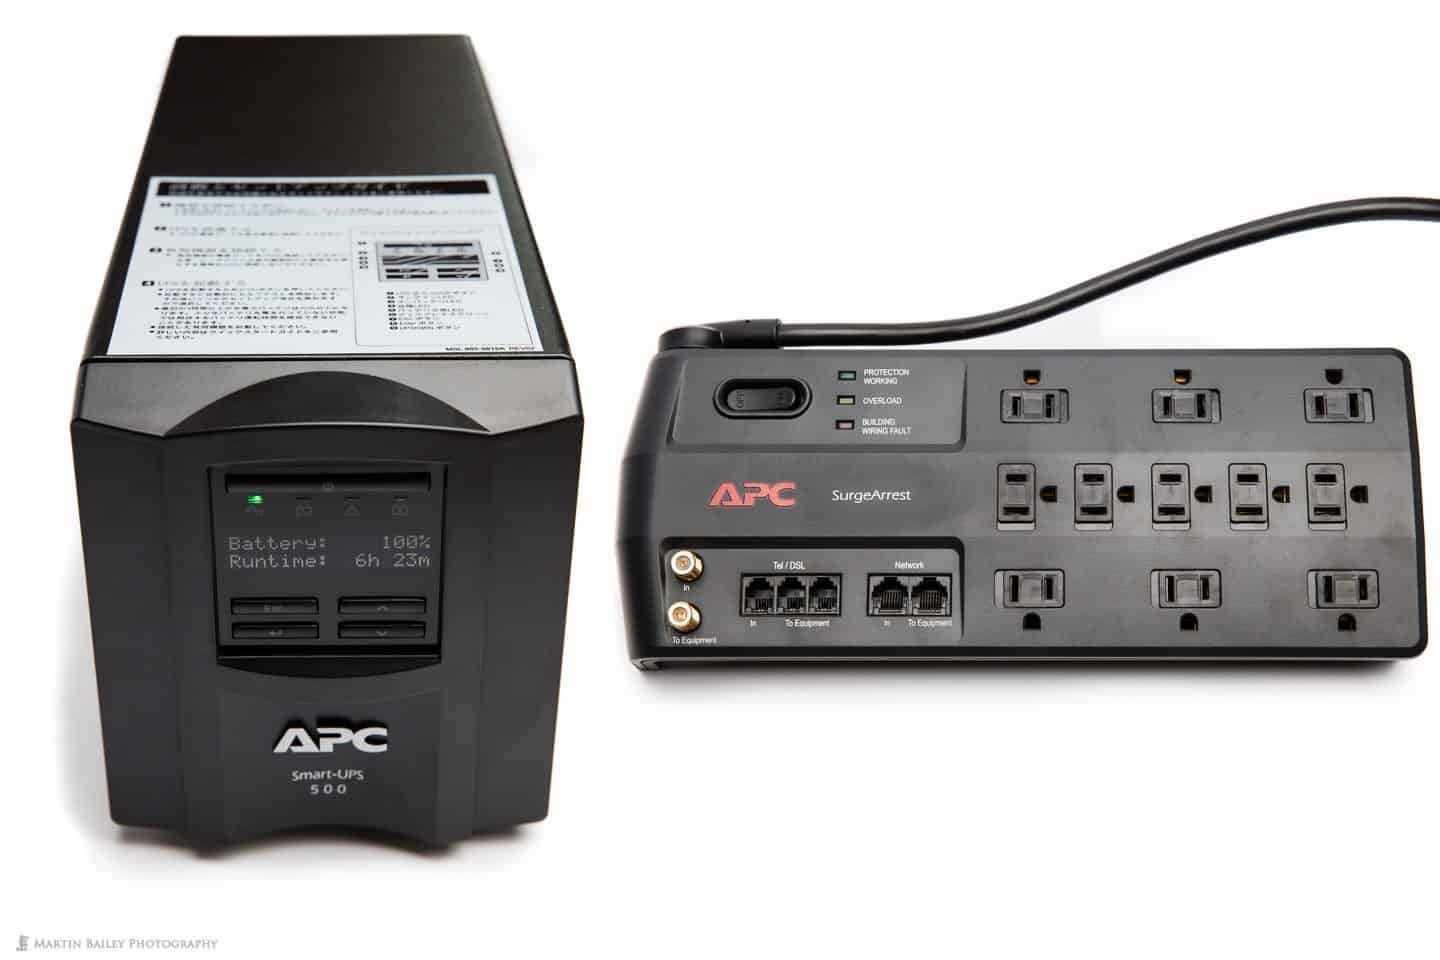 APC Smart UPS 500J and SurgeArrest Power Strip